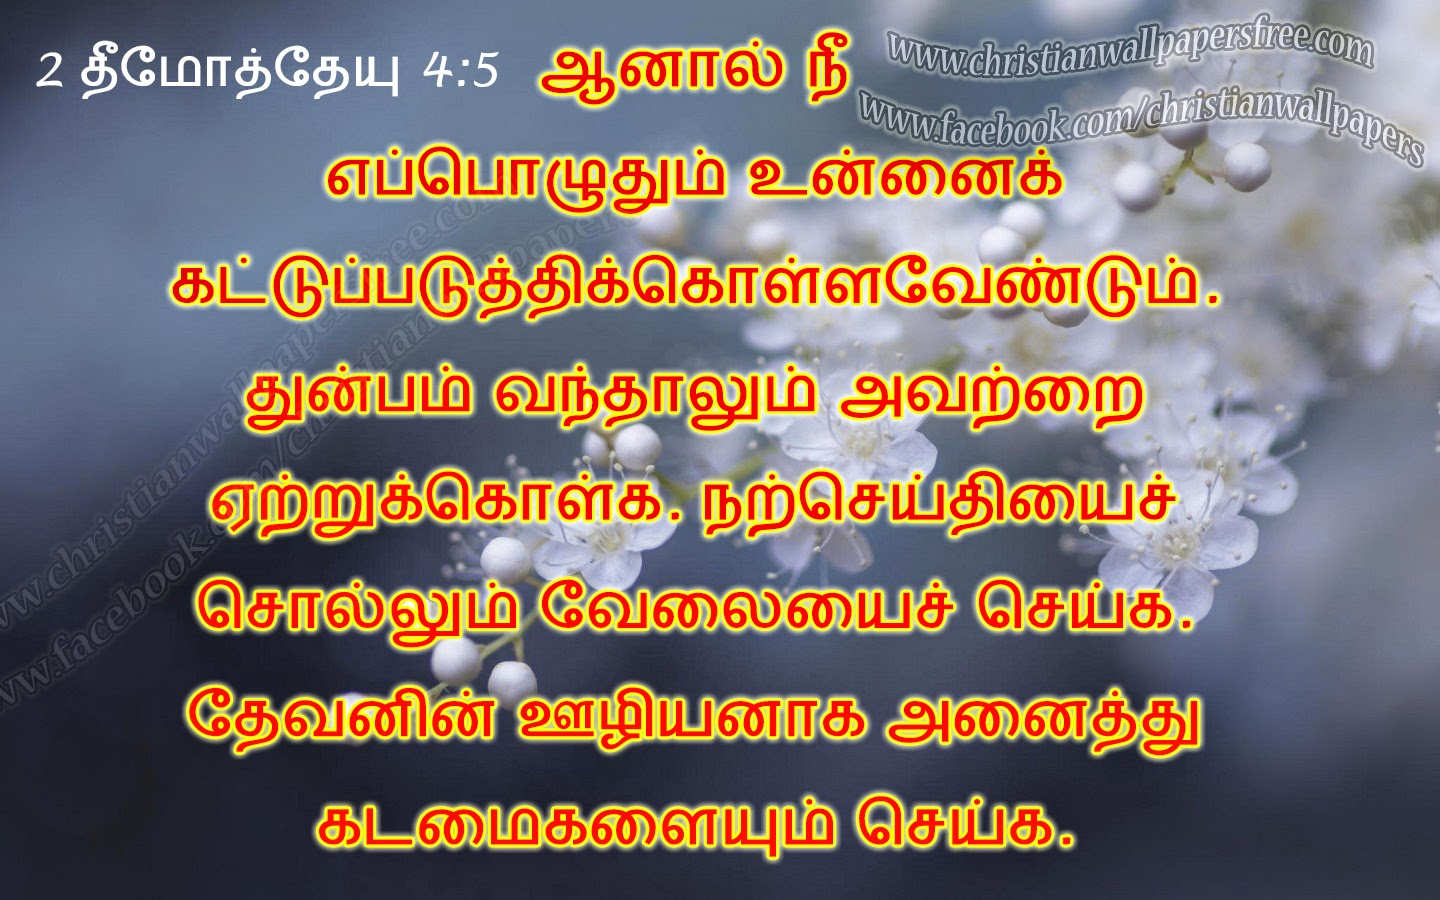 Jesus Wallpaper With Bible Verses Tamil | www.imgkid.com ...